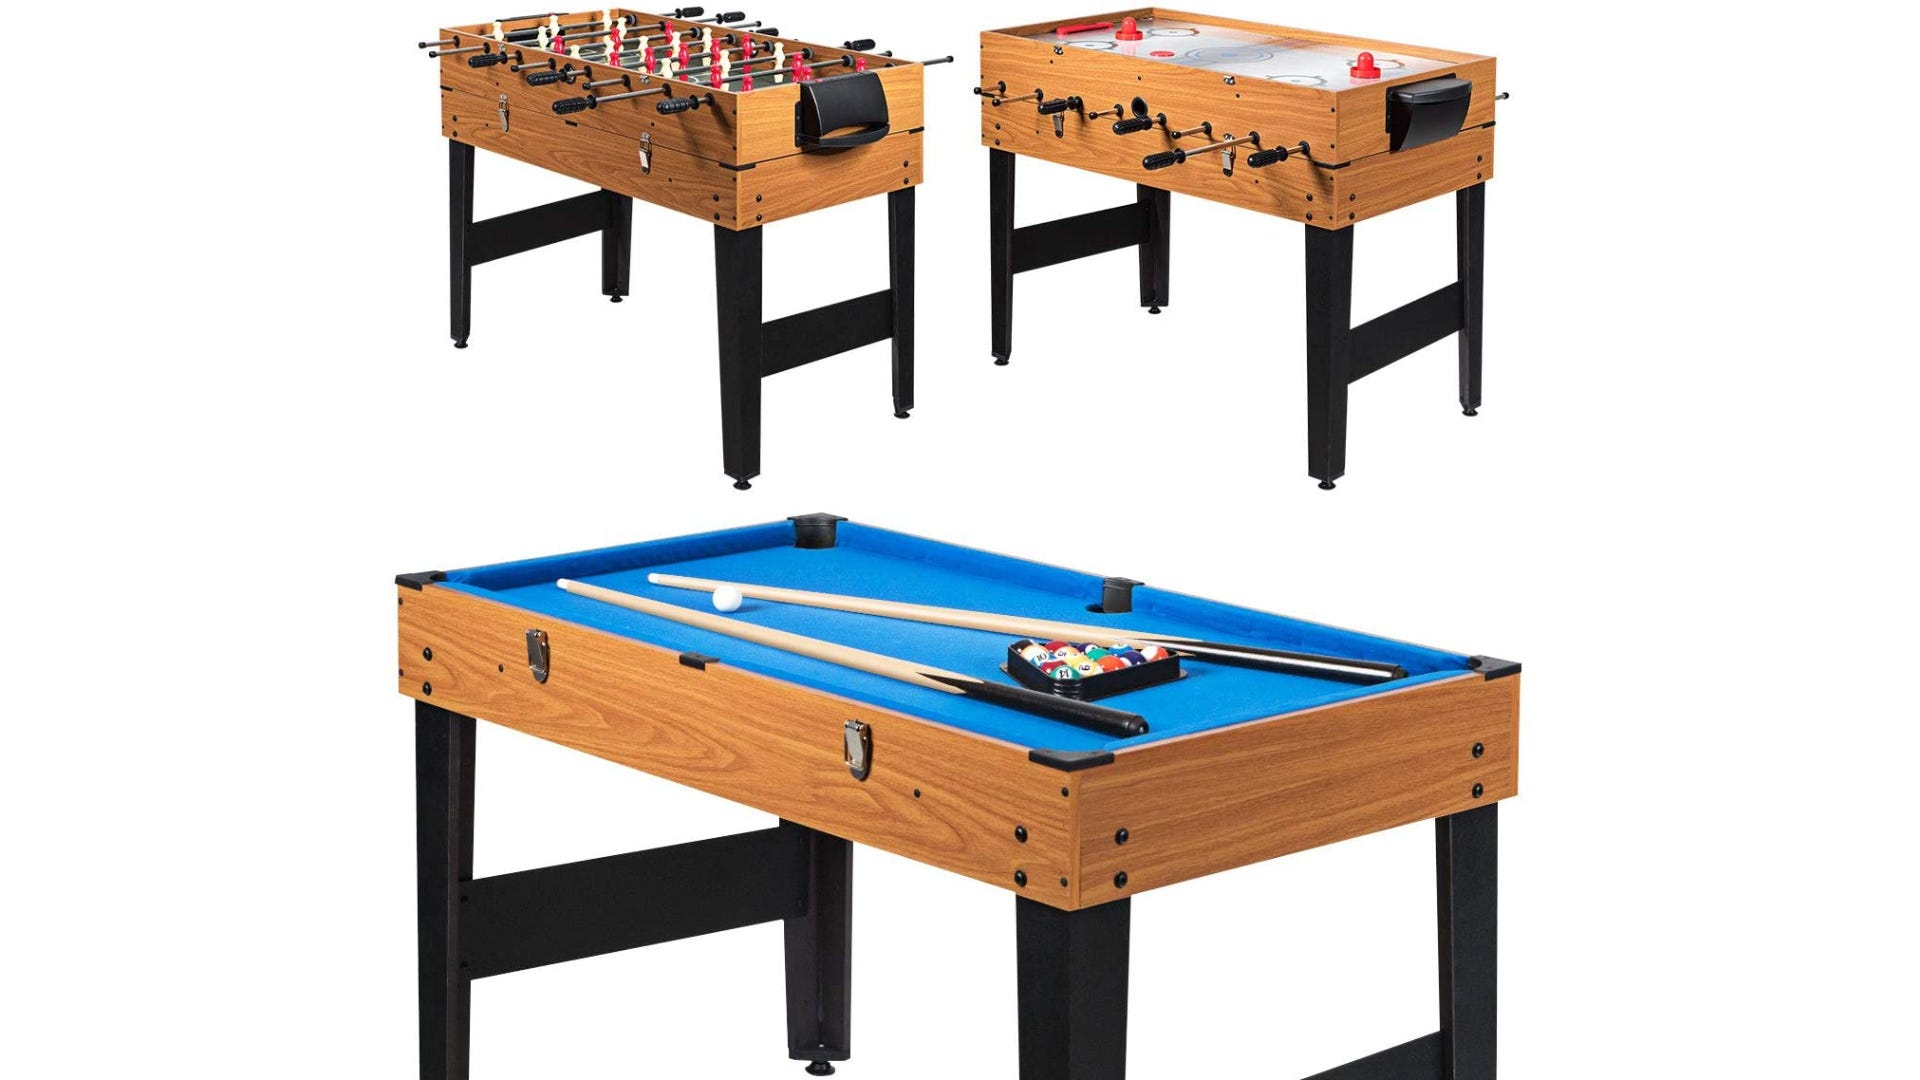 3-in-1 wooden foosball combination gaming table with black legs